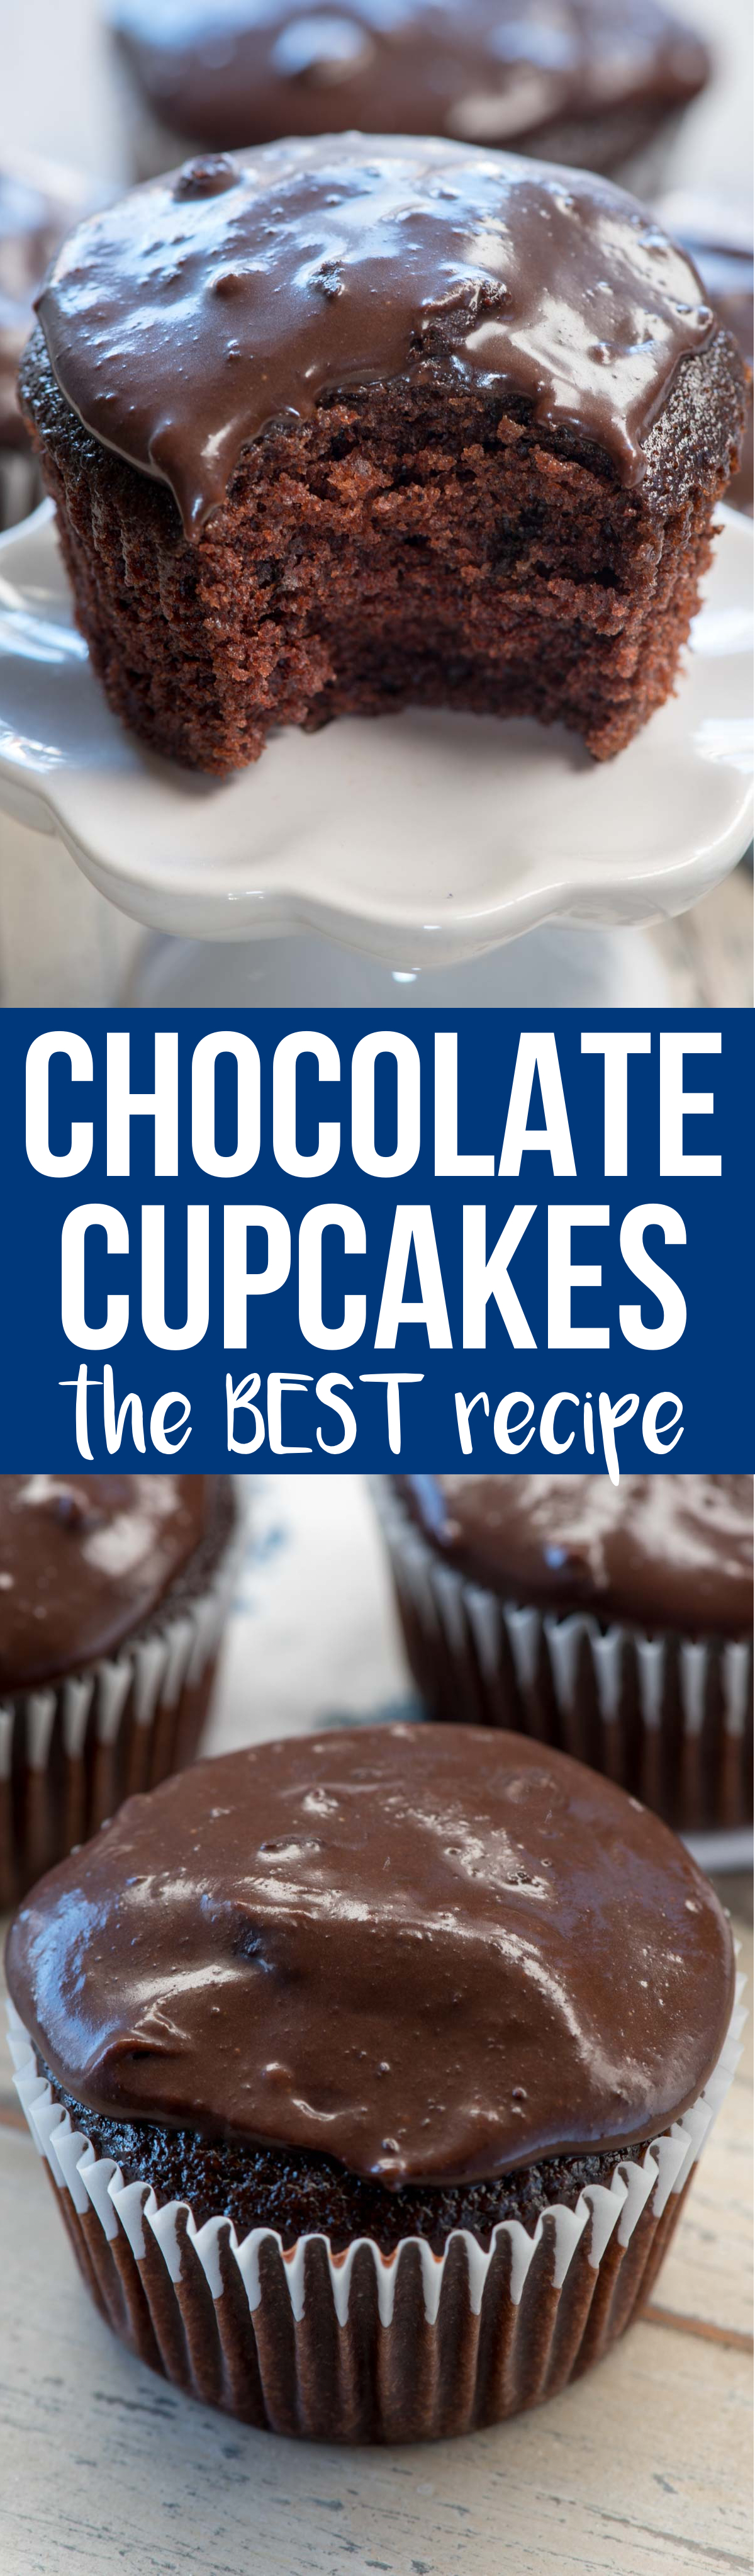 This is the BEST chocolate cupcake recipe I've ever eaten. It's moist and soft and the cooked chocolate frosting recipe is better than ganache!